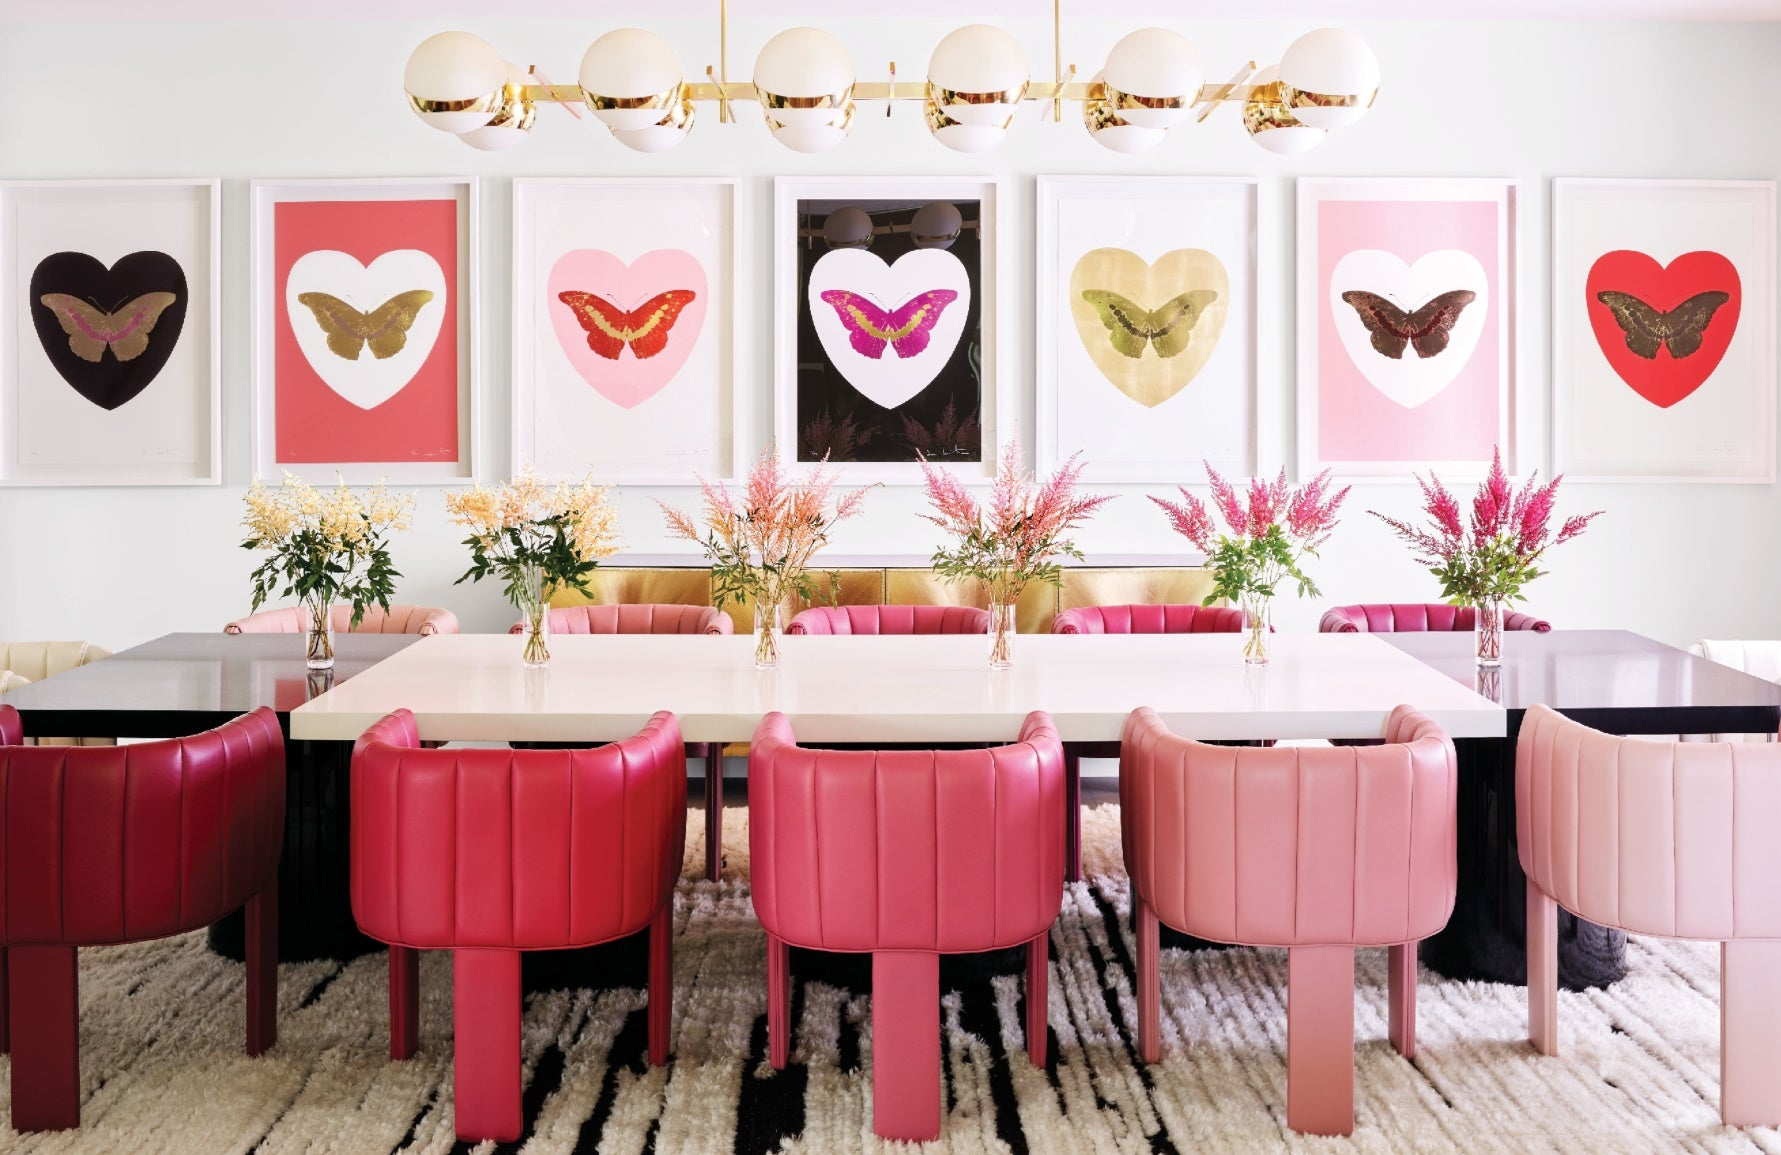 Millennial Pink Interiors | Kylie Jenner home by Martyn Lawrence Bullard | Shop pink furniture online at LuxDeco.com